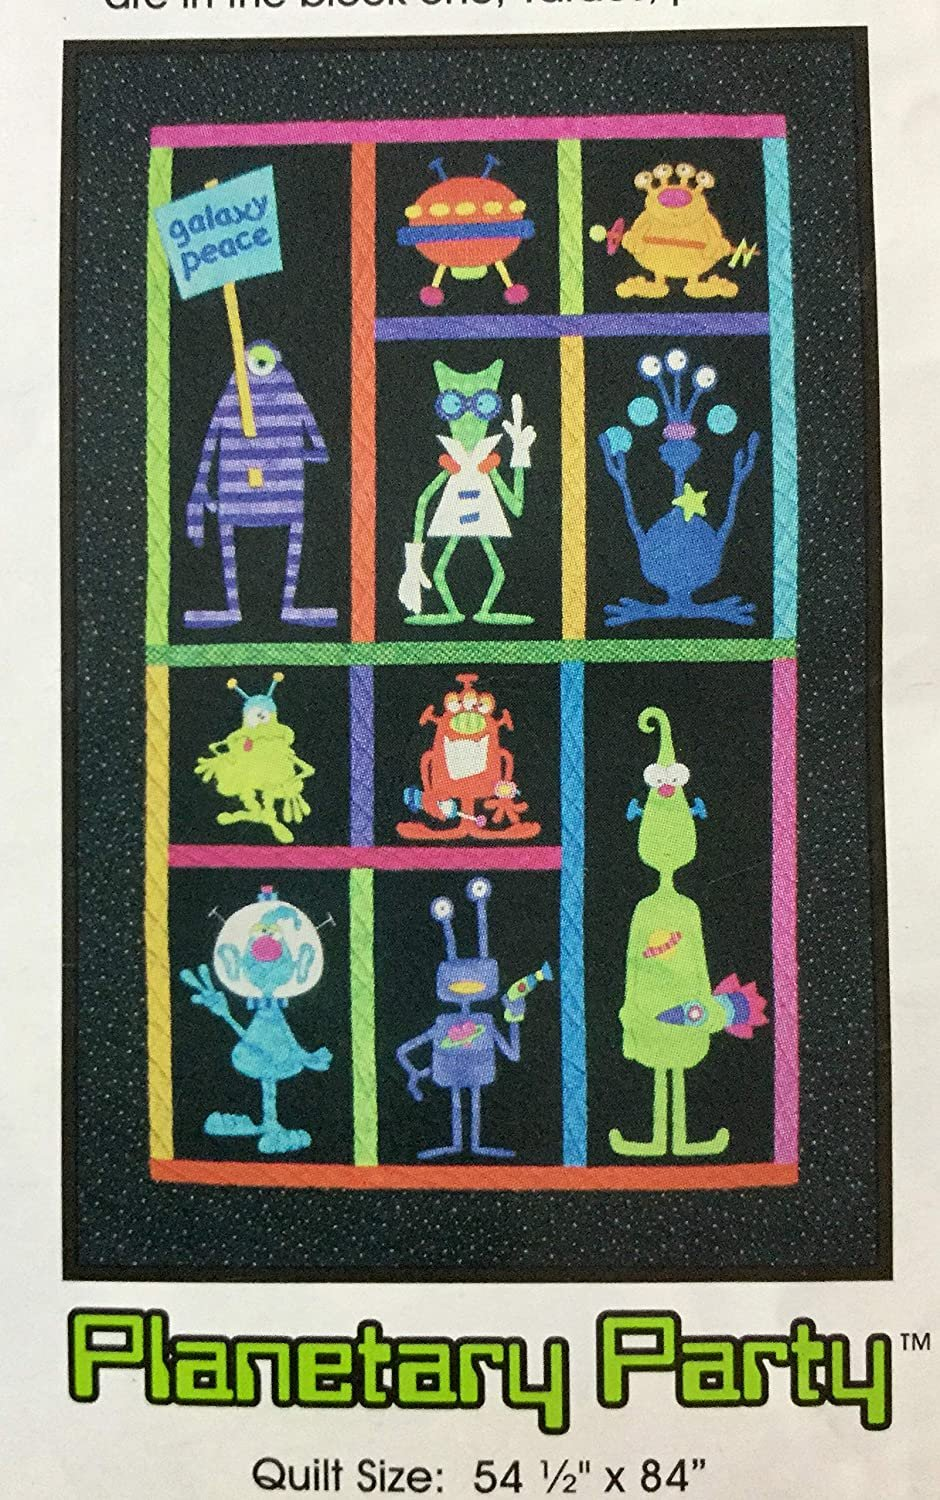 Planetary Party - Complete Set of Patterns - Amy Bradley Designs